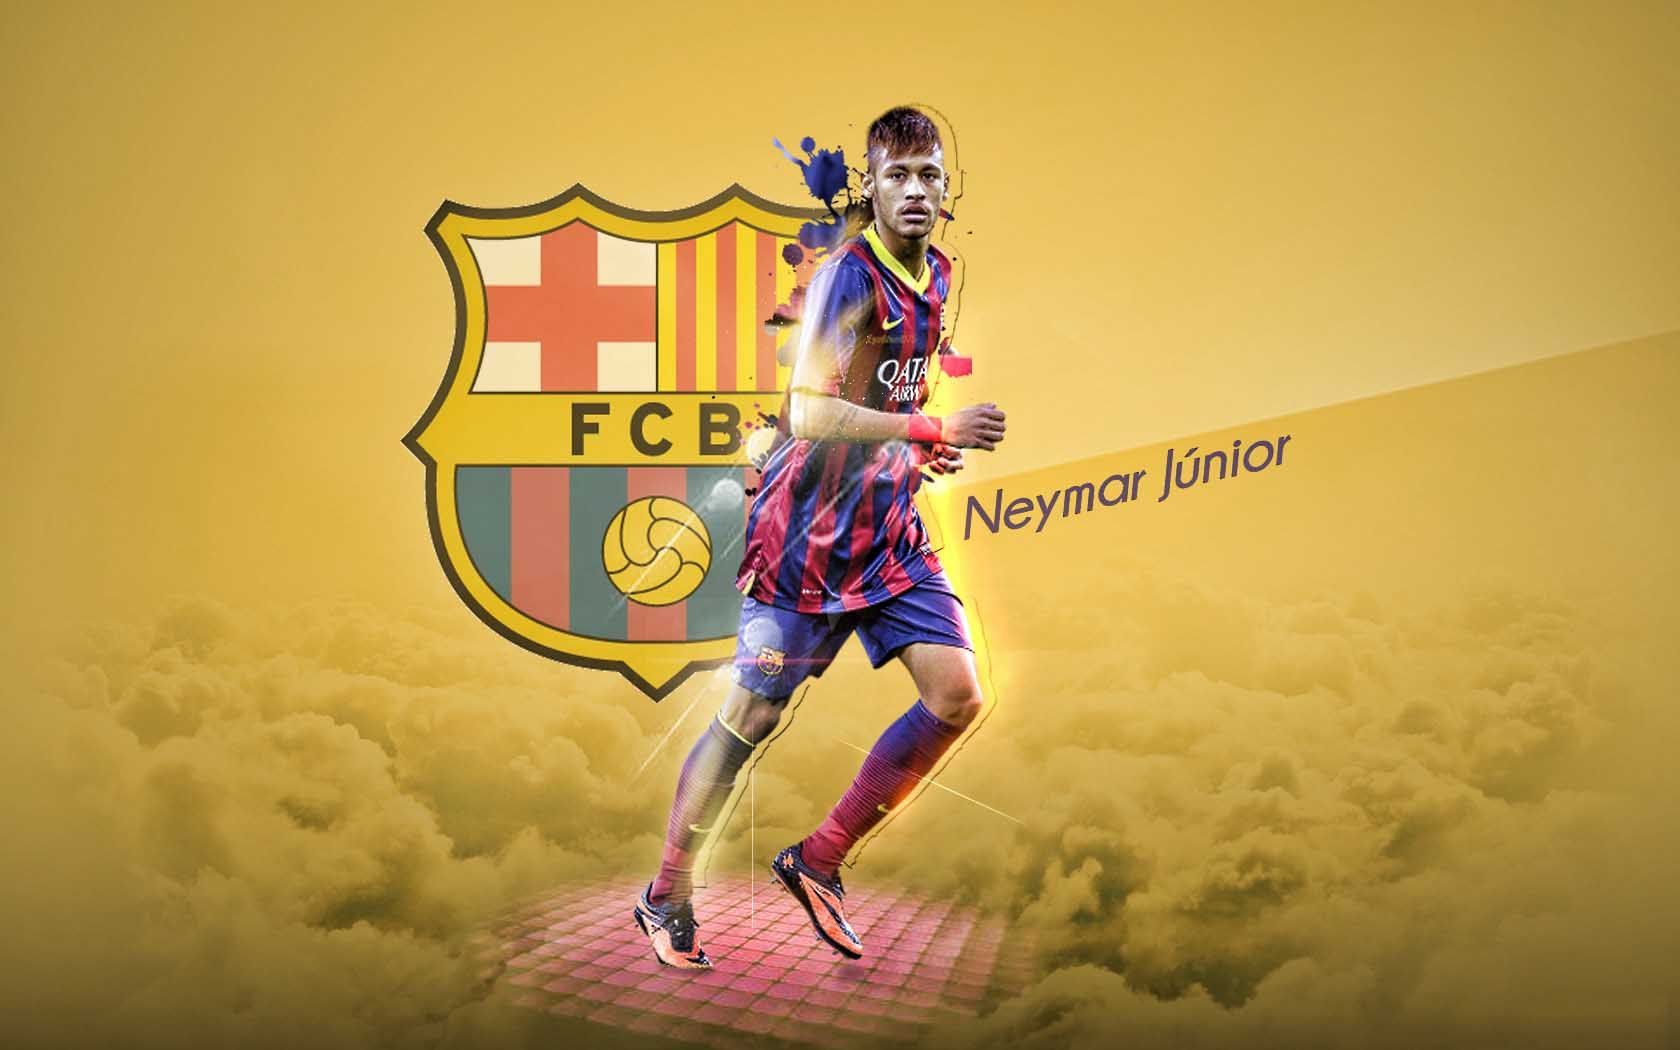 Sport Neymar Moving Images Wallpaper 1680x1050 Cool Pc Wallpapers Neymar Neymar Jr Neymar Barcelona